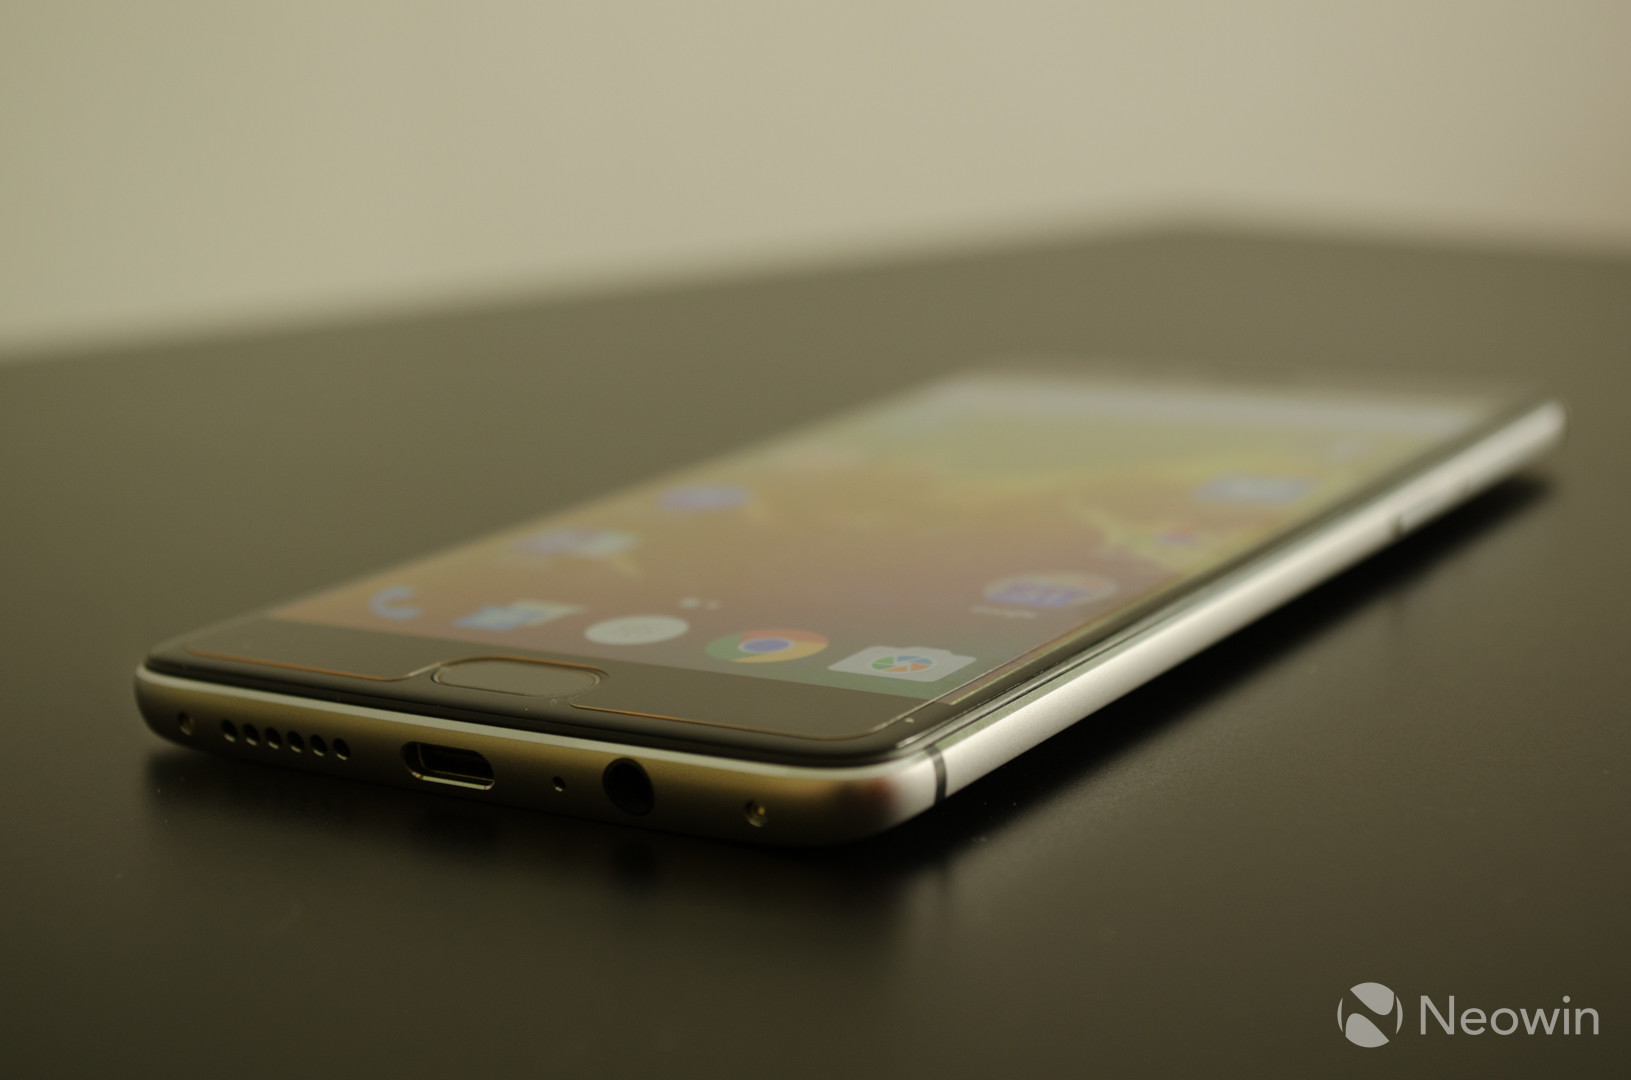 OnePlus 3 review: everyone gets a flagship - Neowin